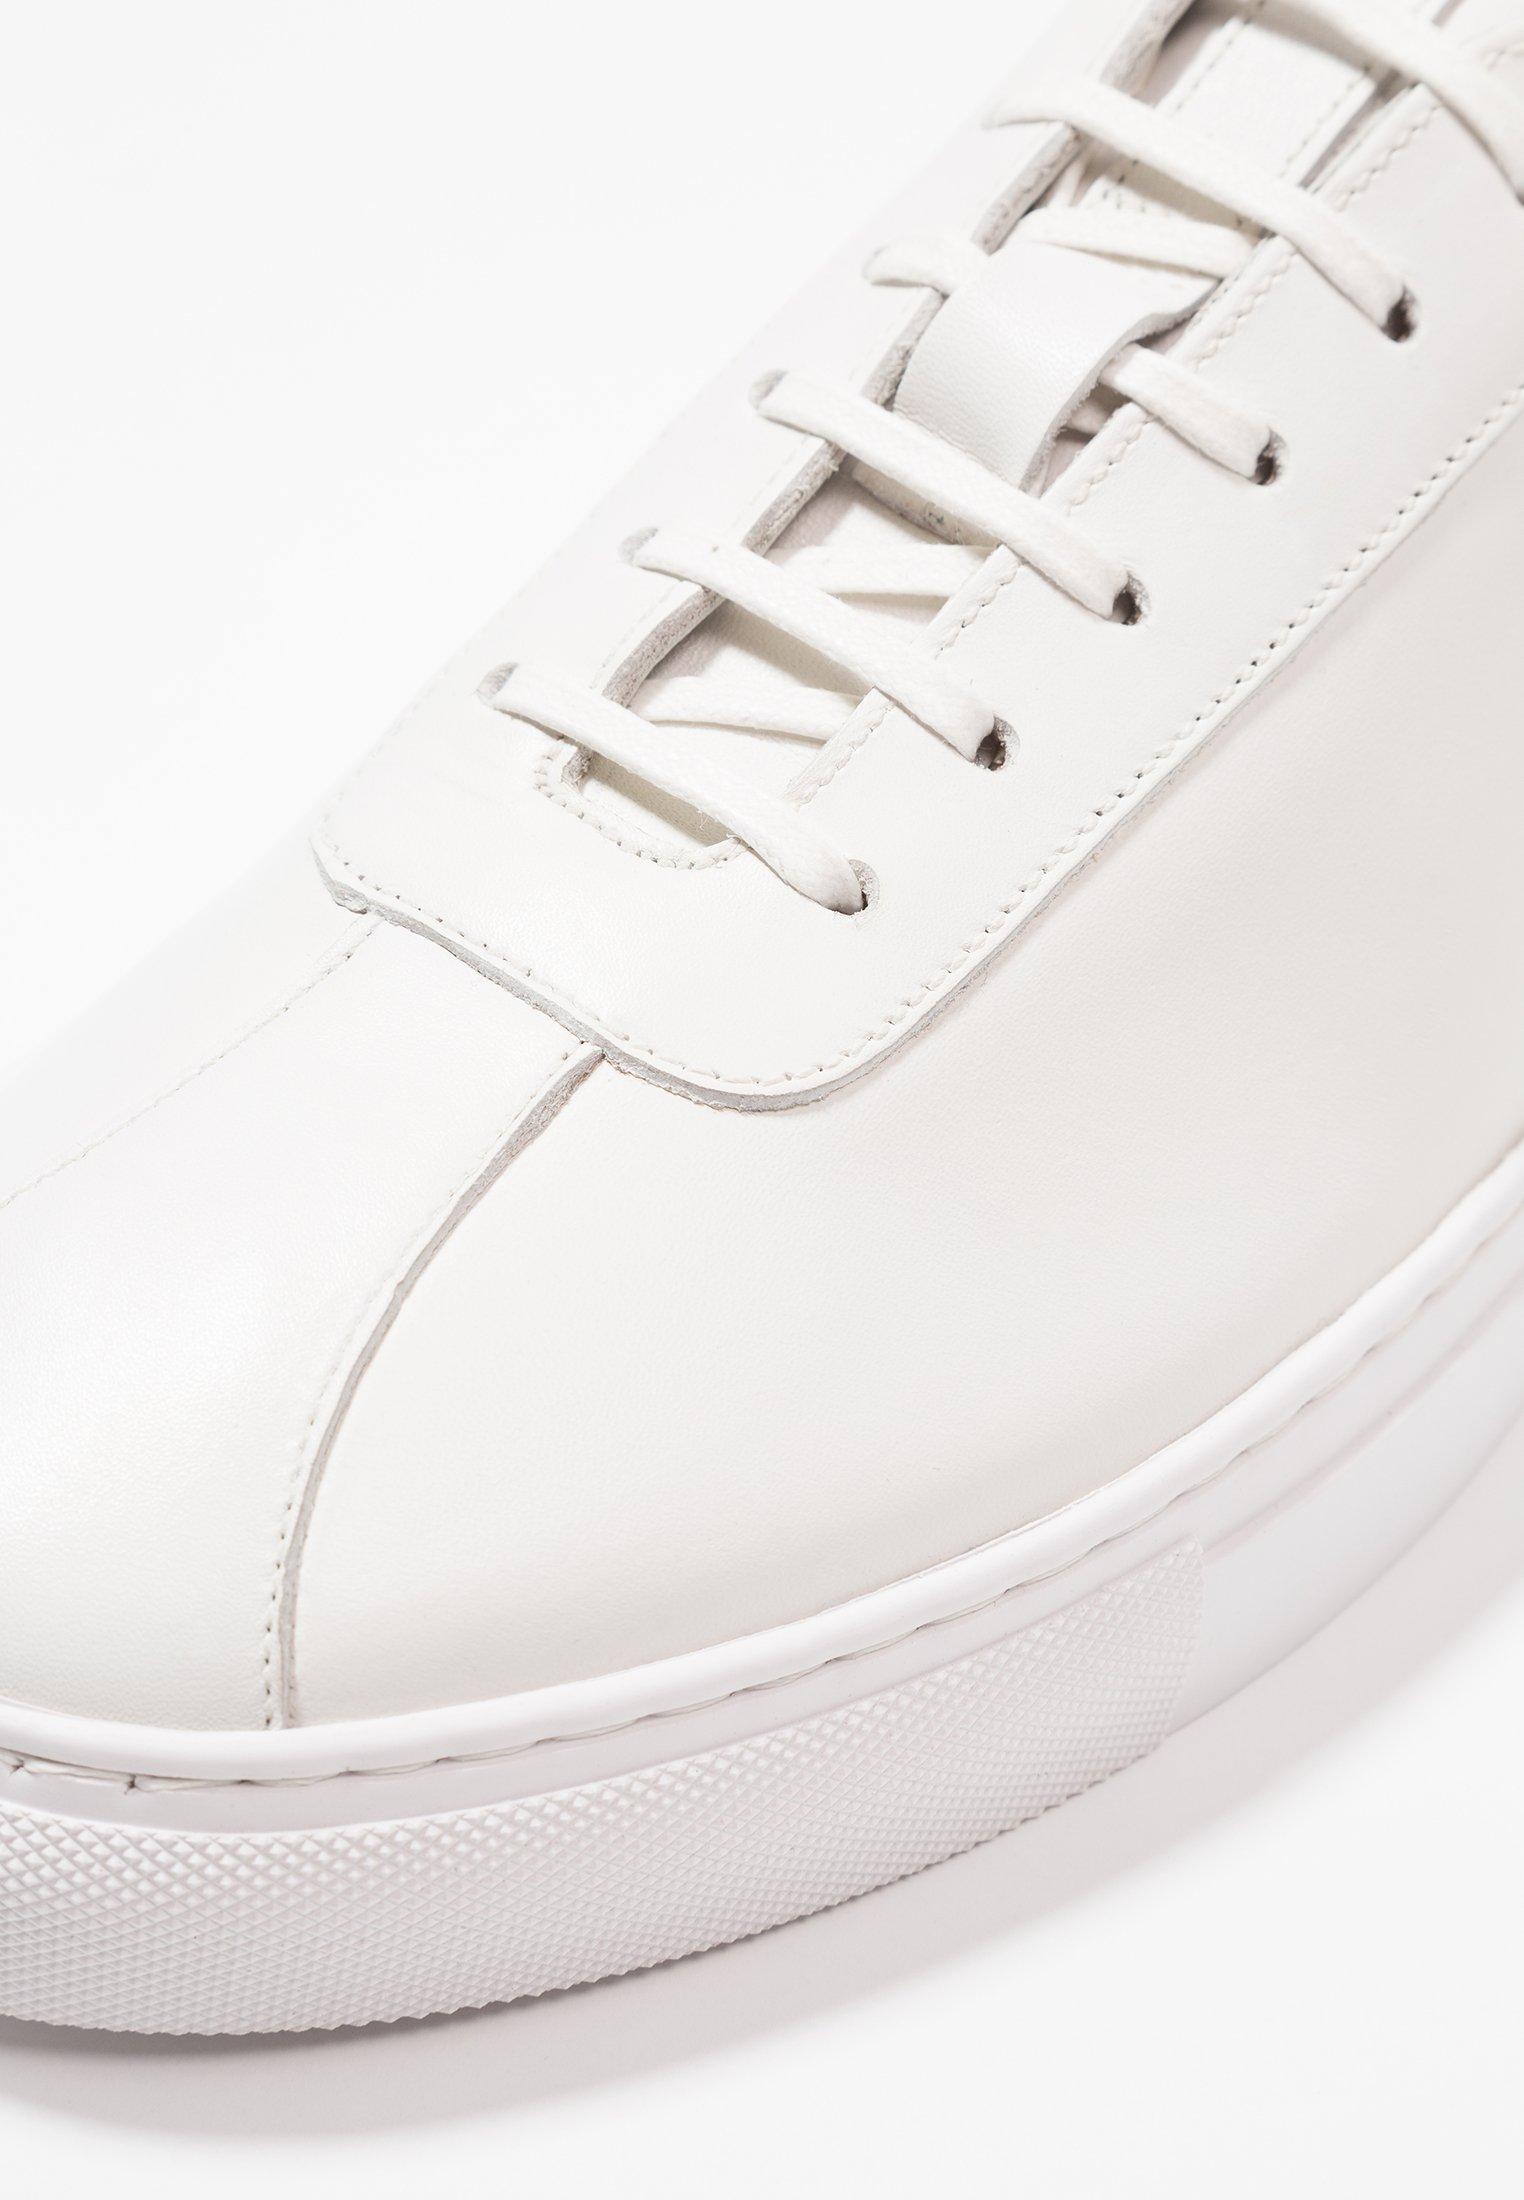 Grenson Sneakers - White